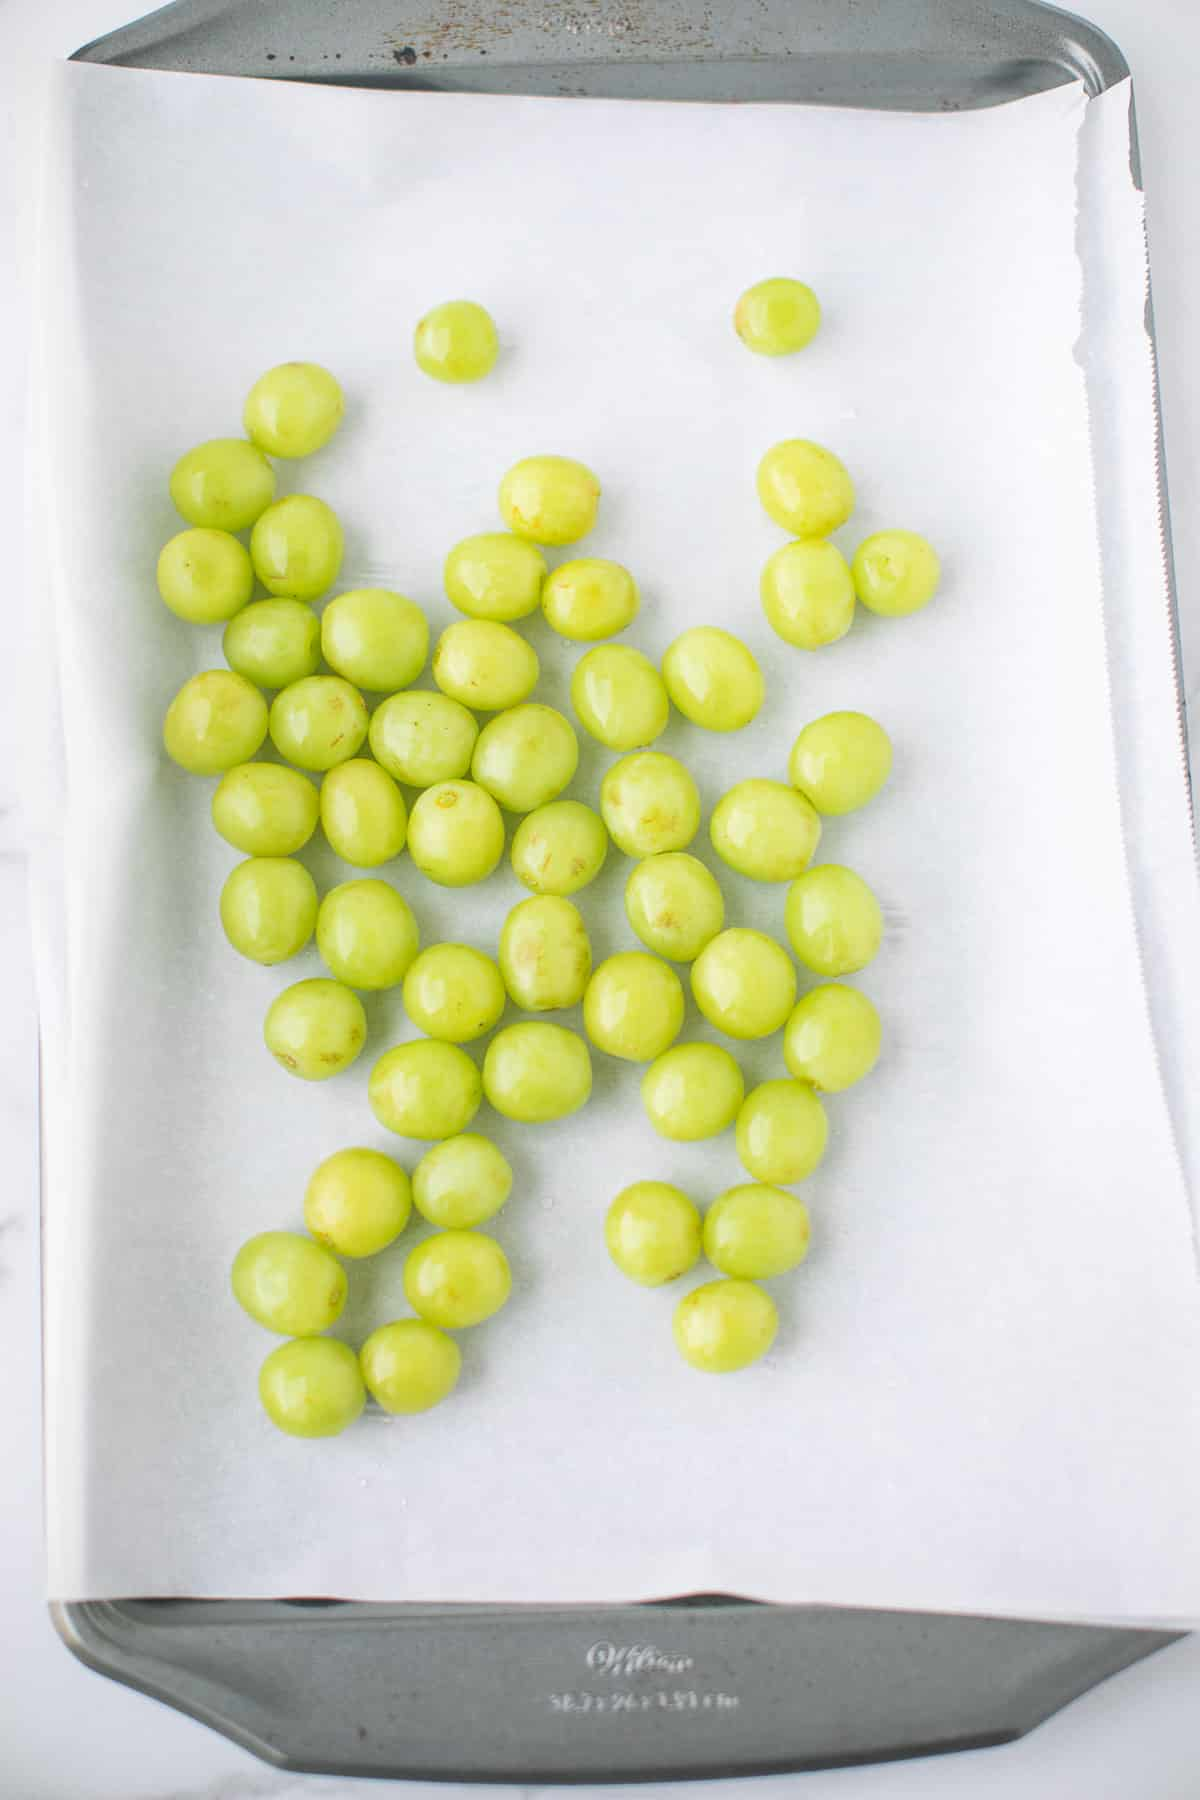 washed grapes on a baking sheet lined with parchment paper